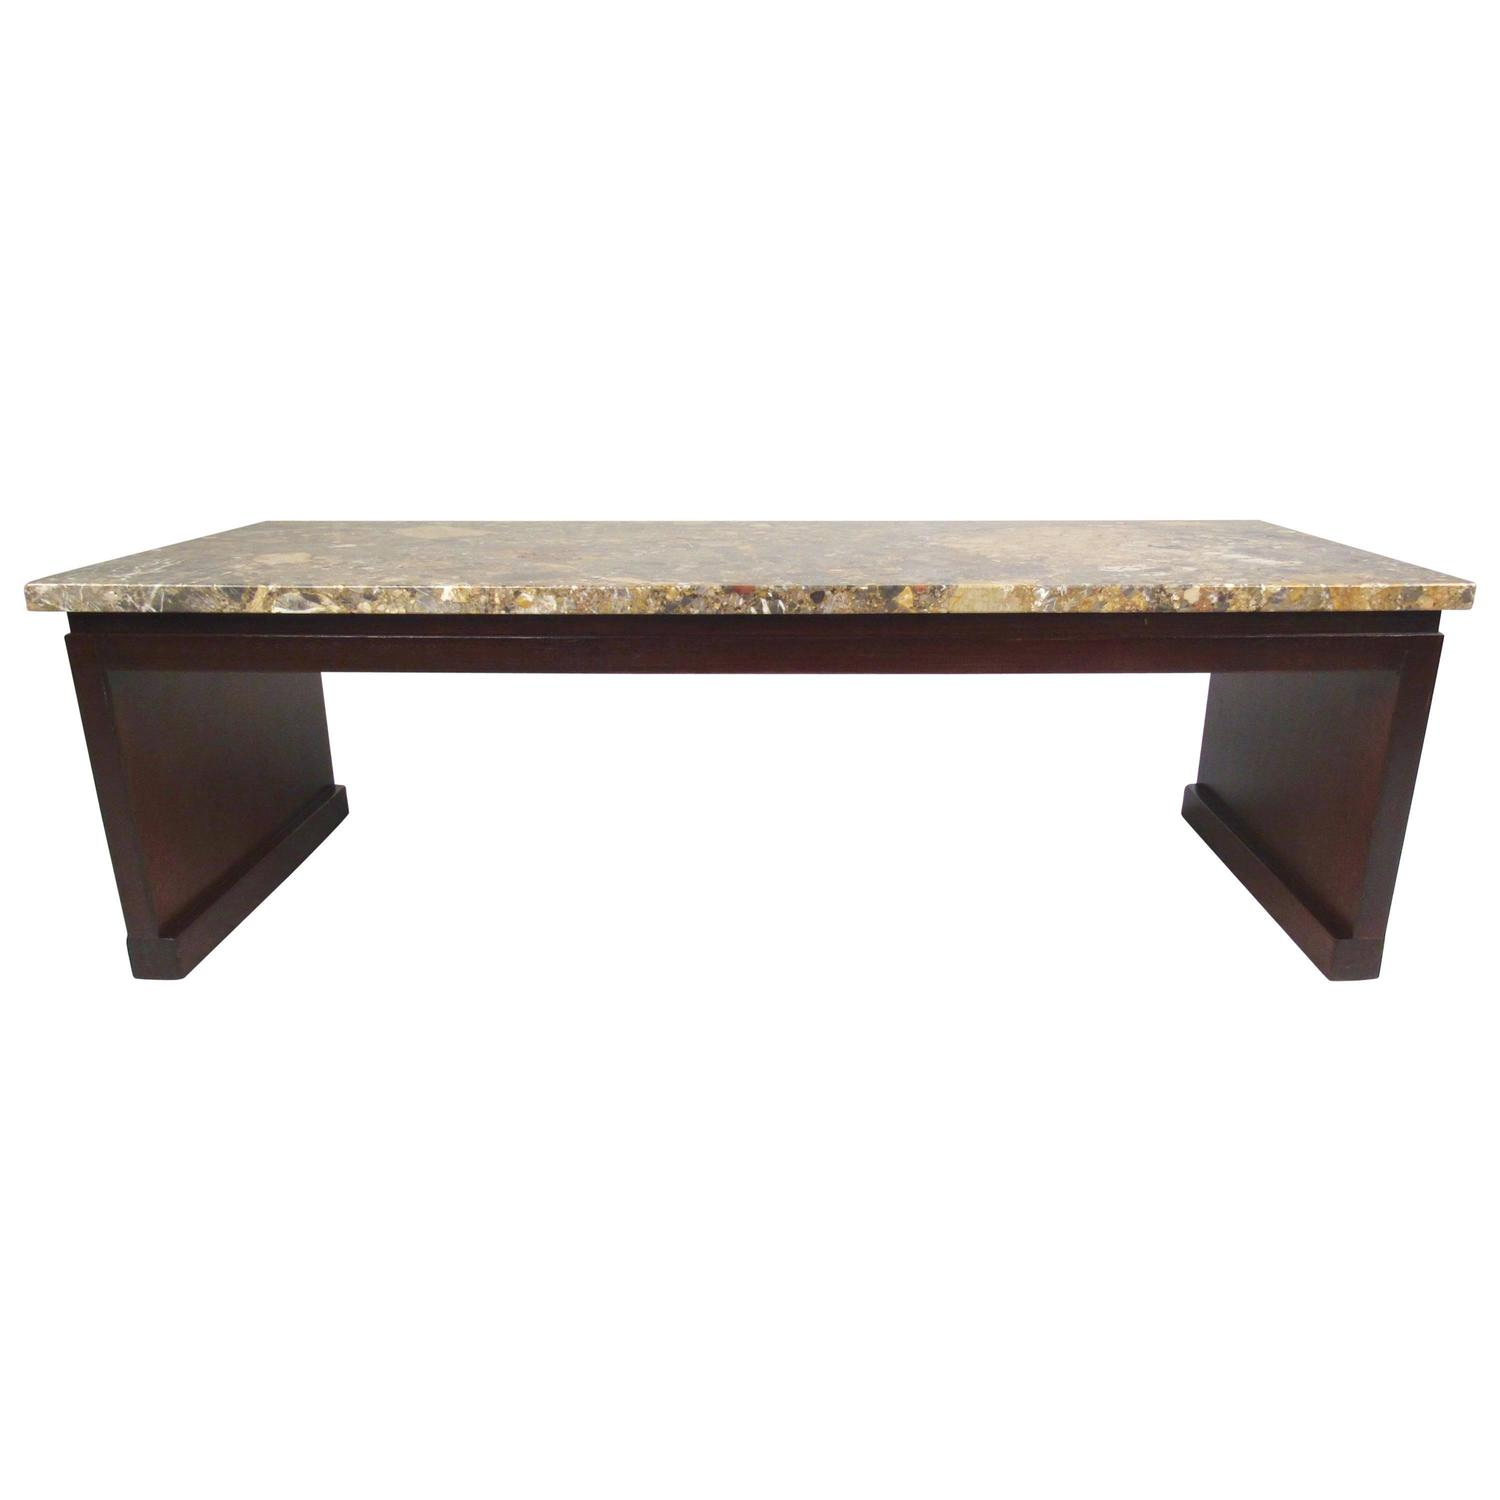 Mid Century Modern Marble Top Coffee Table: Mid-Century Modern Marble-Top Coffee Table Or Bench By